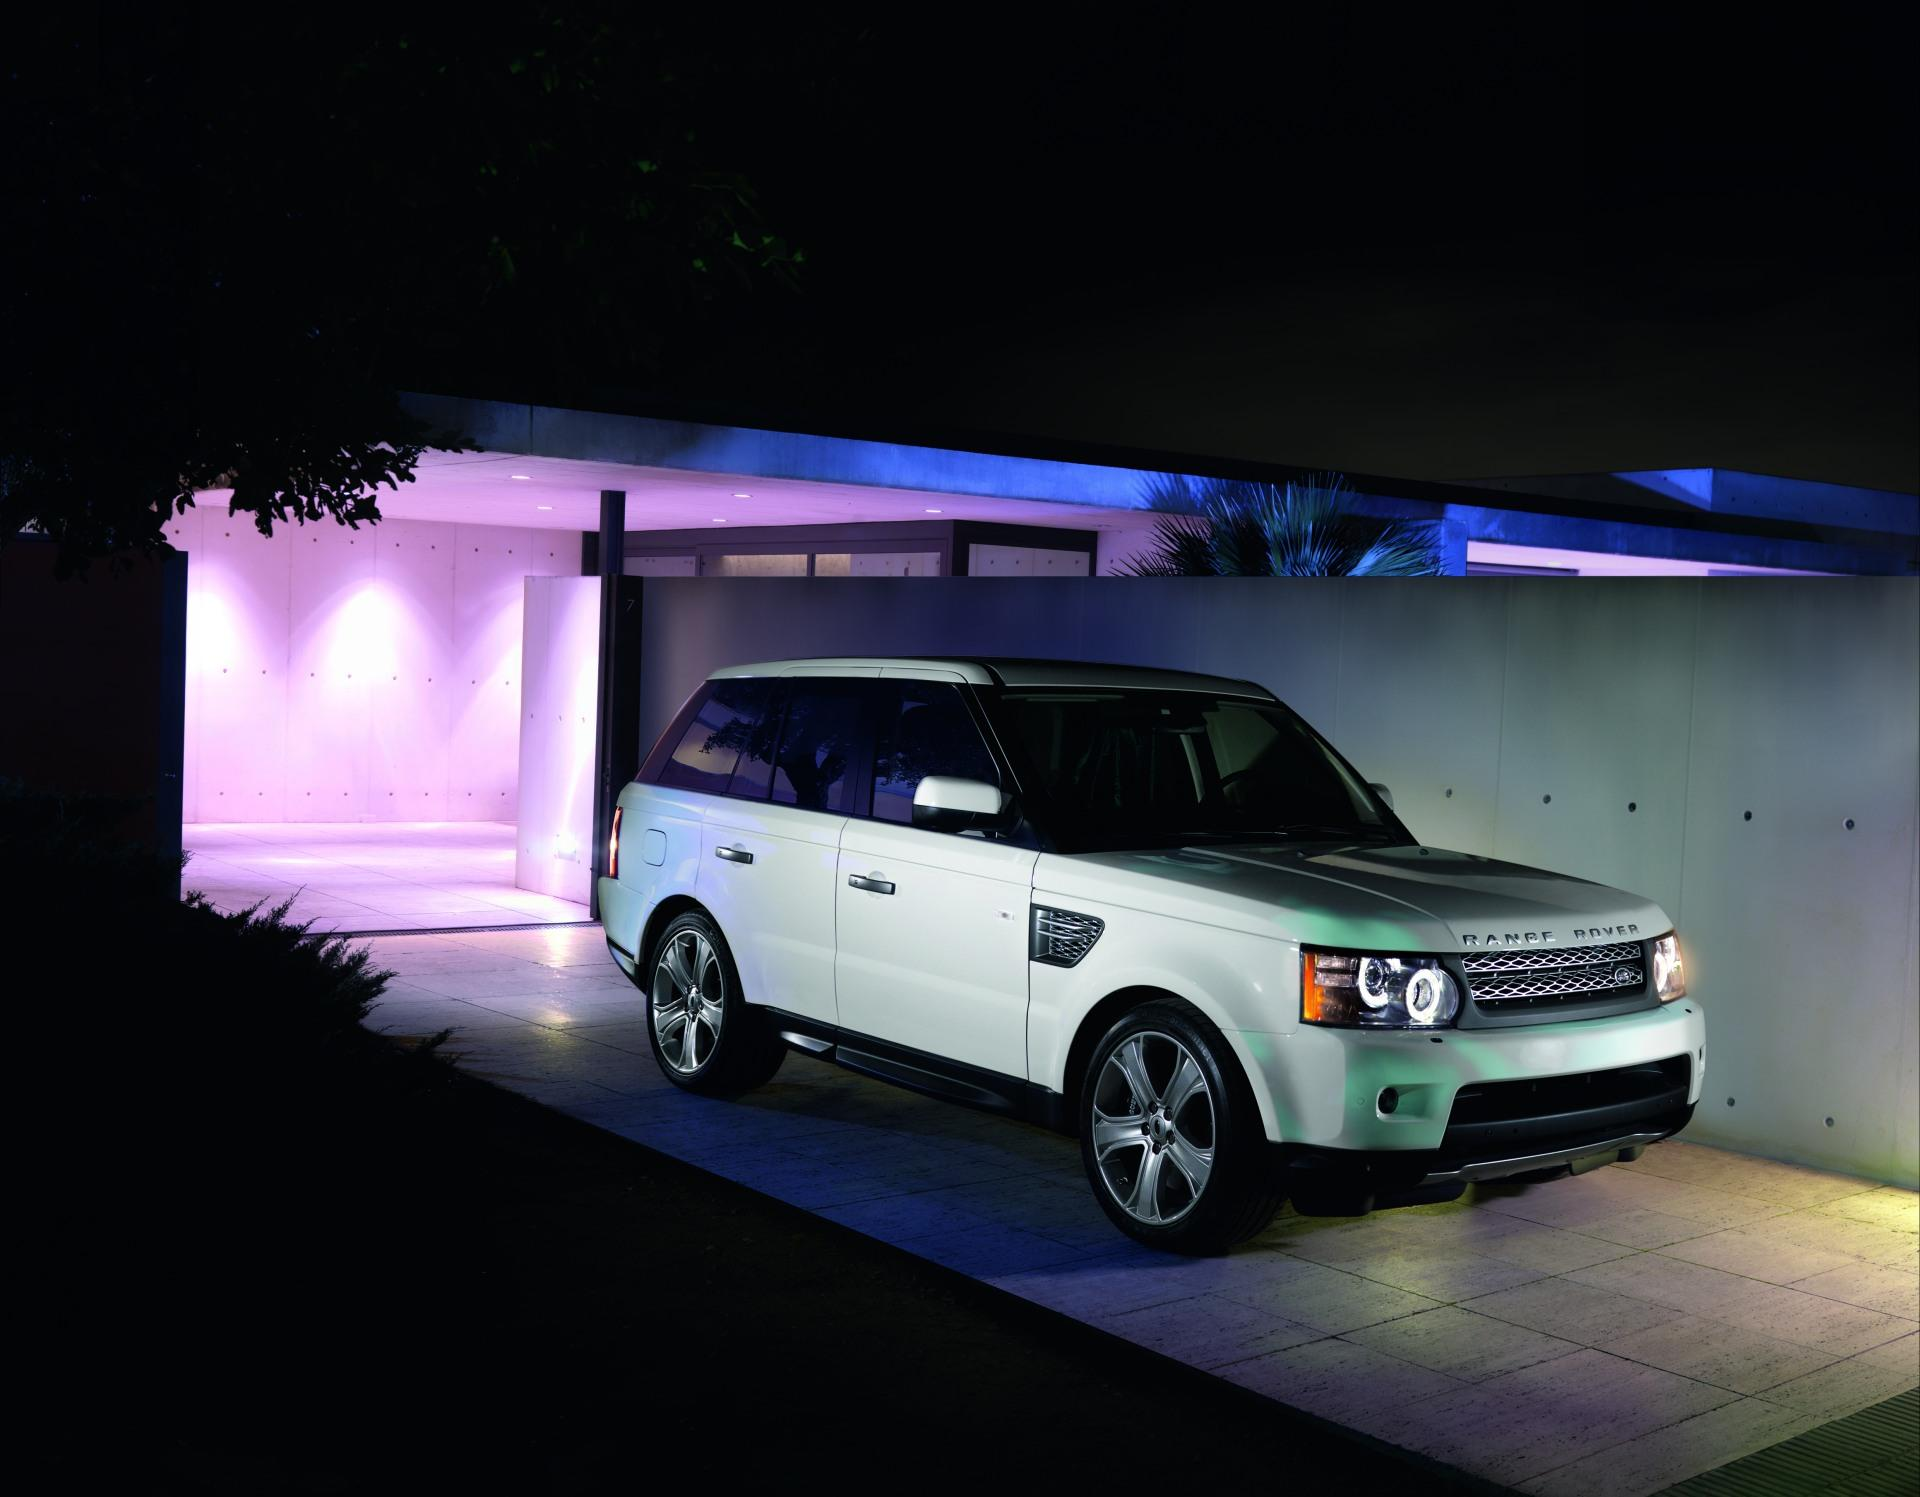 2010 land rover range rover sport technical specifications and data engine dimensions and. Black Bedroom Furniture Sets. Home Design Ideas